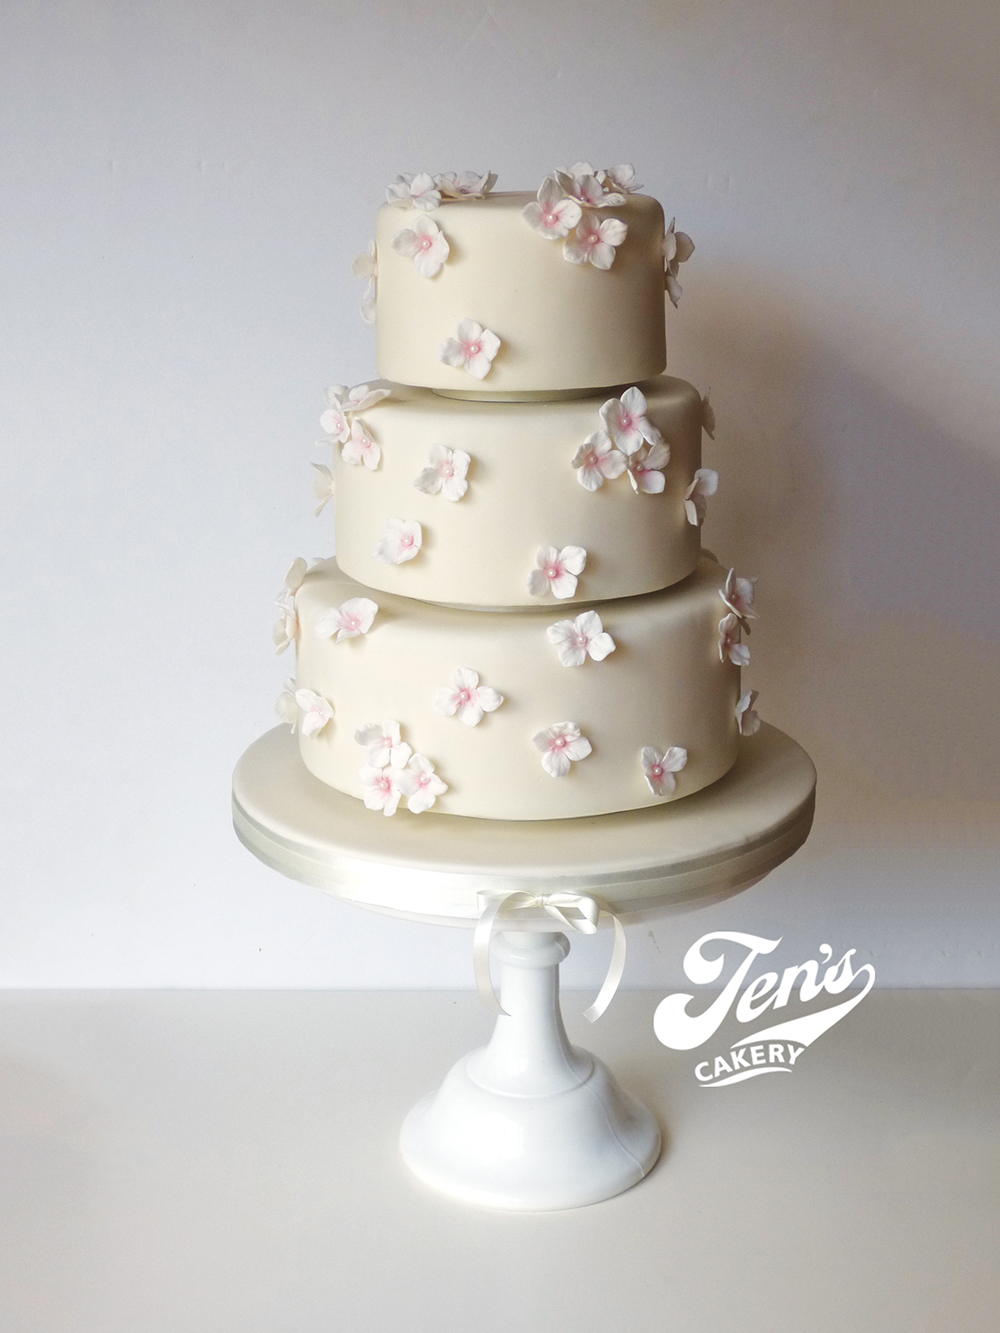 With no large floral arrangement on the top tier, as shown here, Jessica falls into  Price Band A .